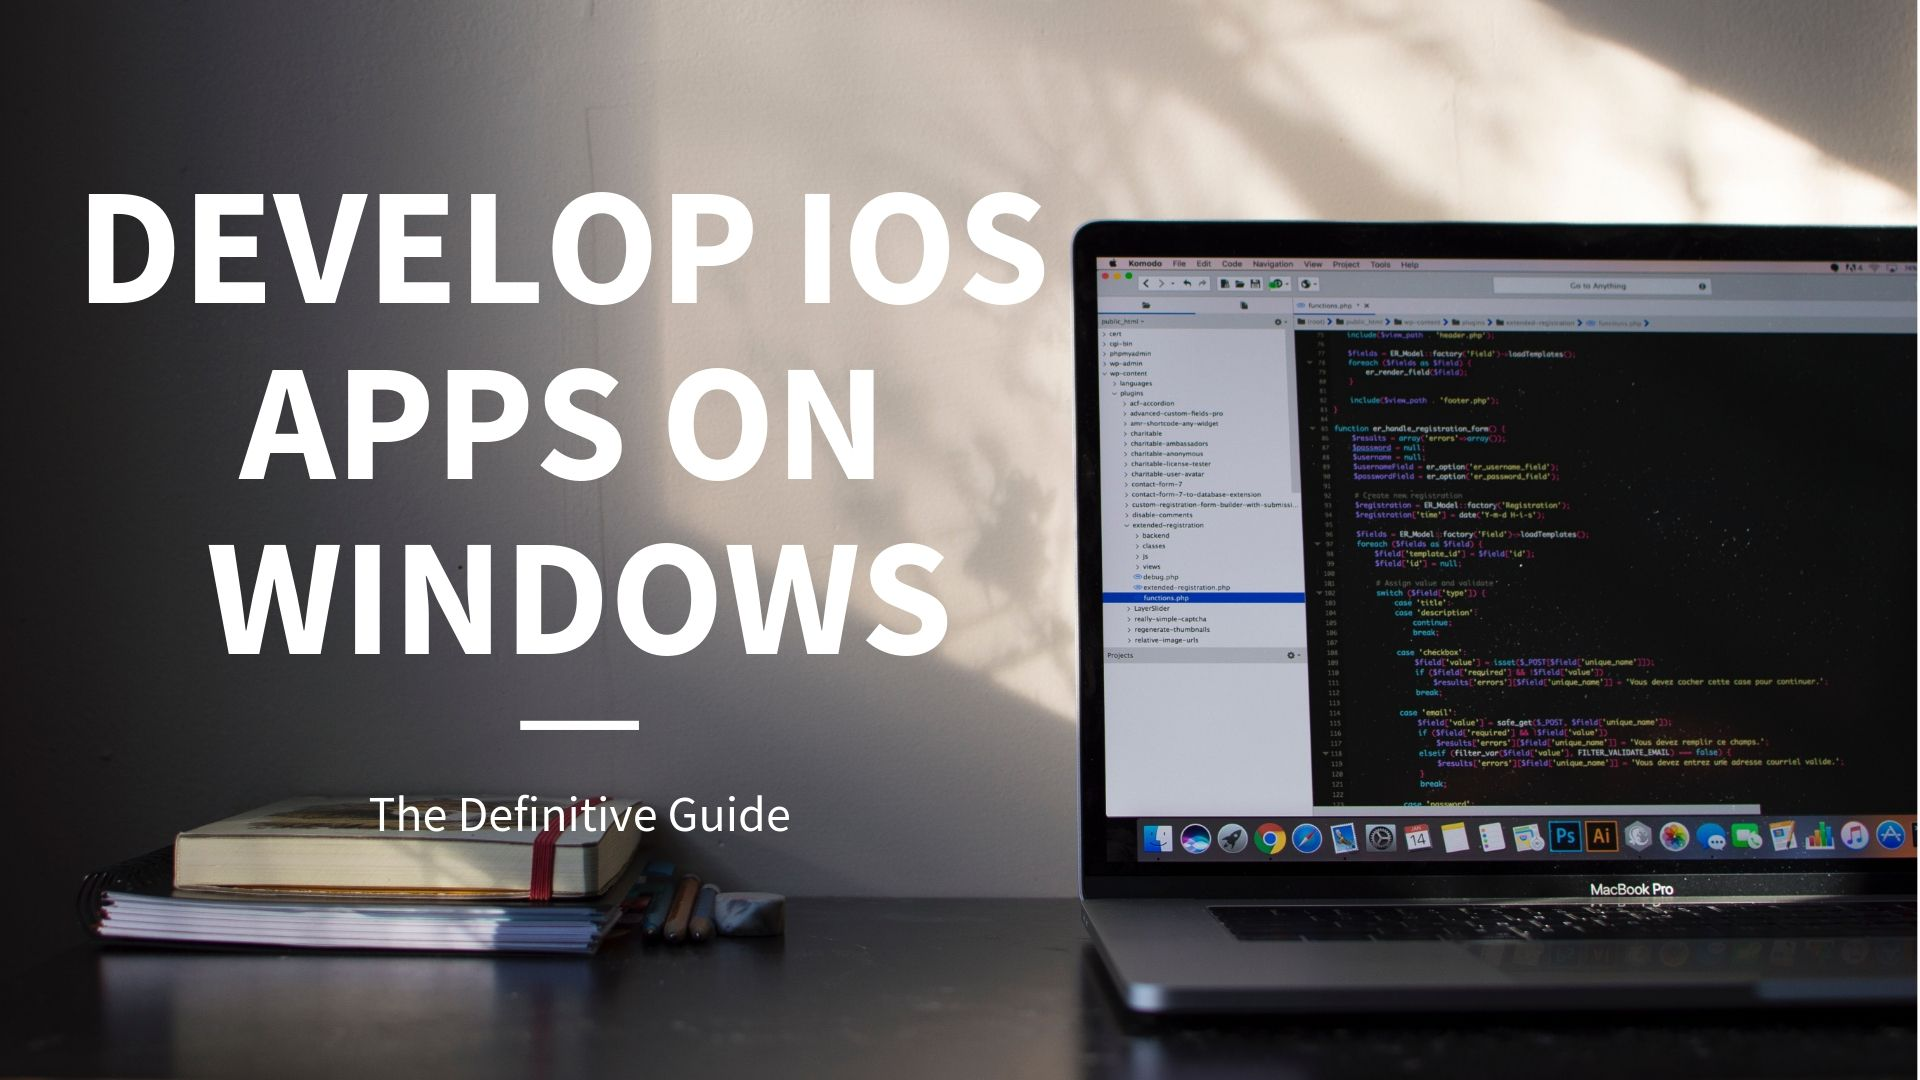 Xcode For Windows: The Best Alternatives To Develop iOS Apps